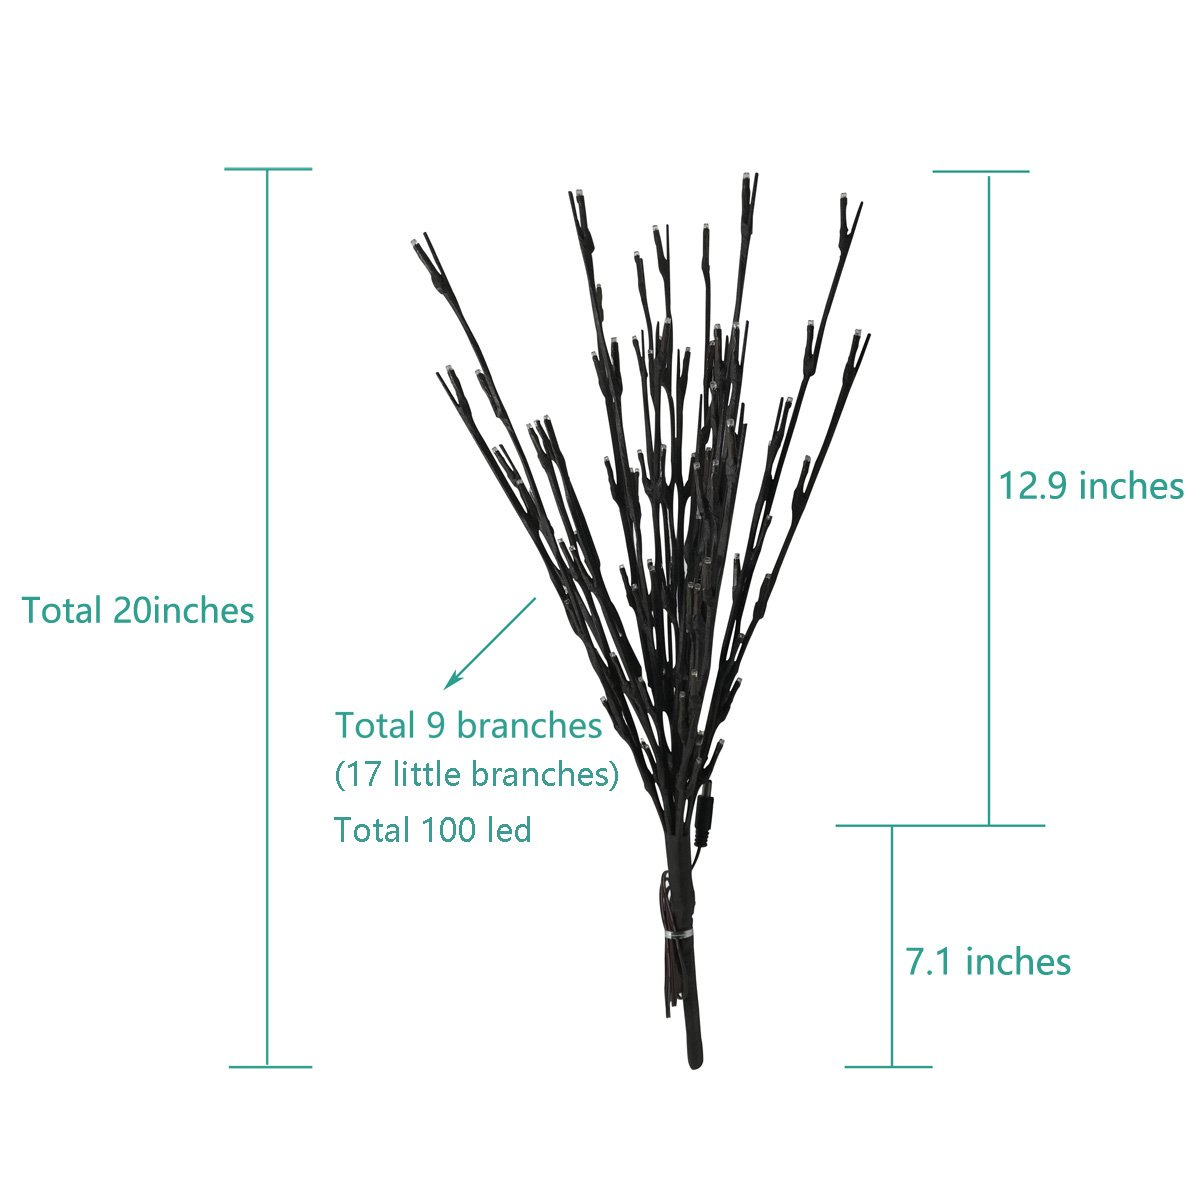 Babali Lighted Twig Branches 20 Inches 100 Led Battery Tree Wiring Diagram And Electric Corded Dual Power Decorative Artificial Willow Warm White Lighting